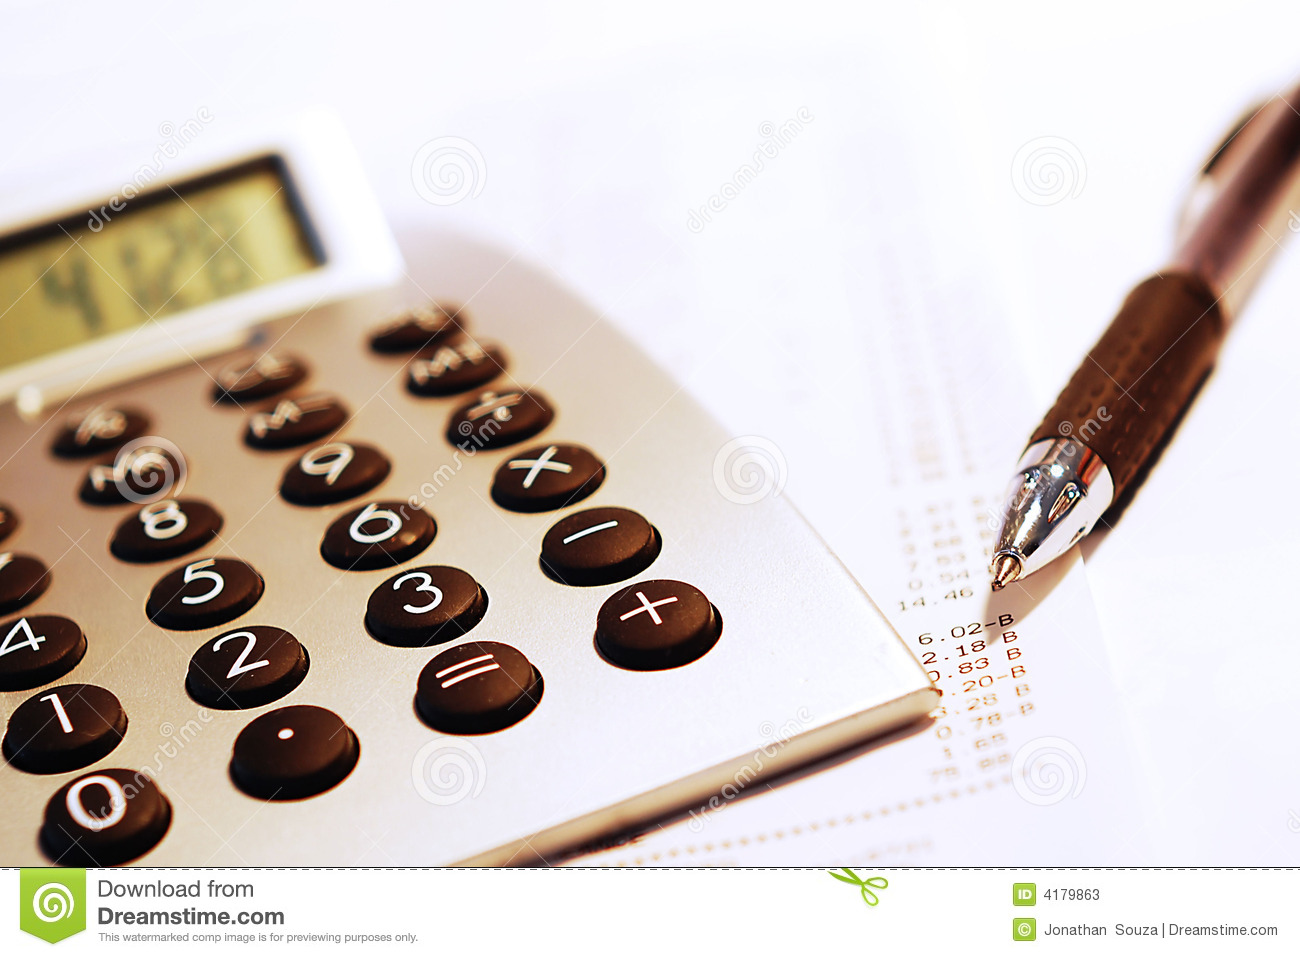 Calculating numbers.